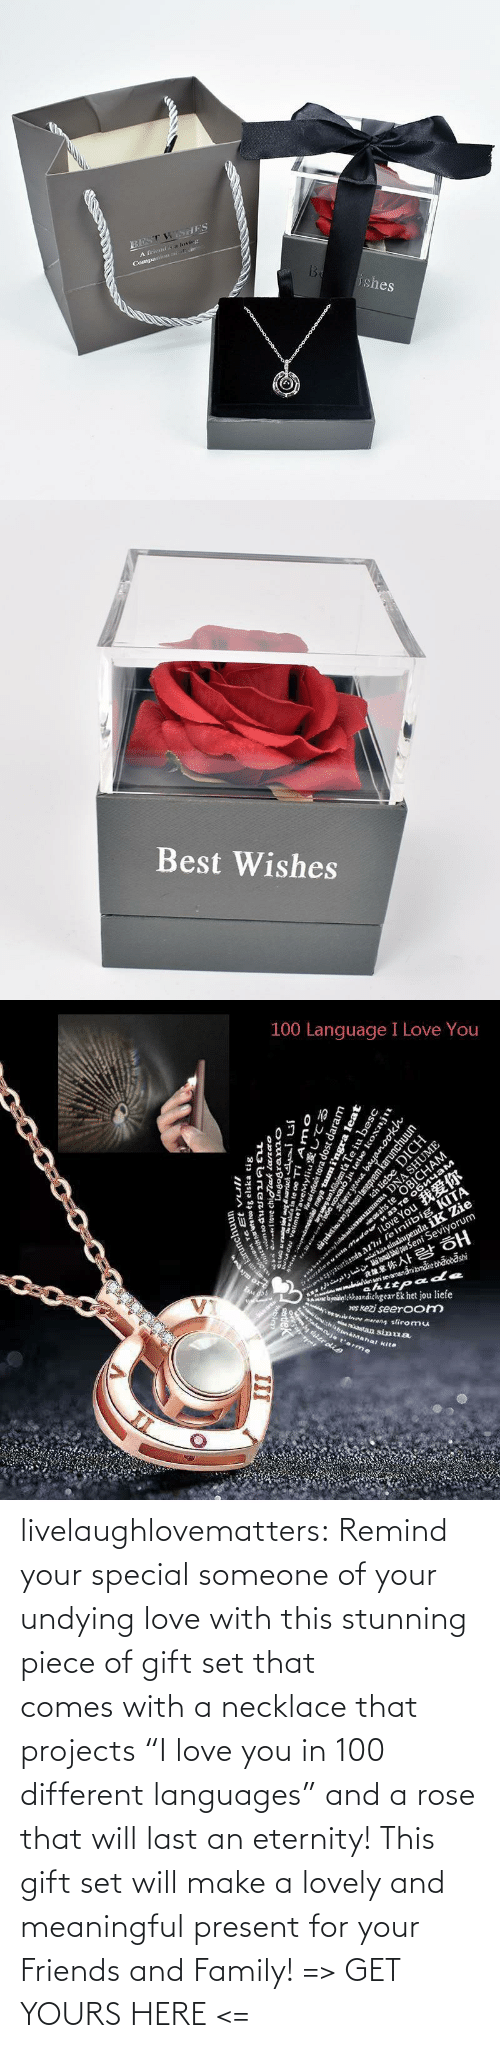 "That Will: livelaughlovematters:  Remind your special someone of your undying love with this stunning piece of gift set that comes with a necklace that projects ""I love you in 100 different languages"" and a rose that will last an eternity! This gift set will make a lovely and meaningful present for your Friends and Family! => GET YOURS HERE <="